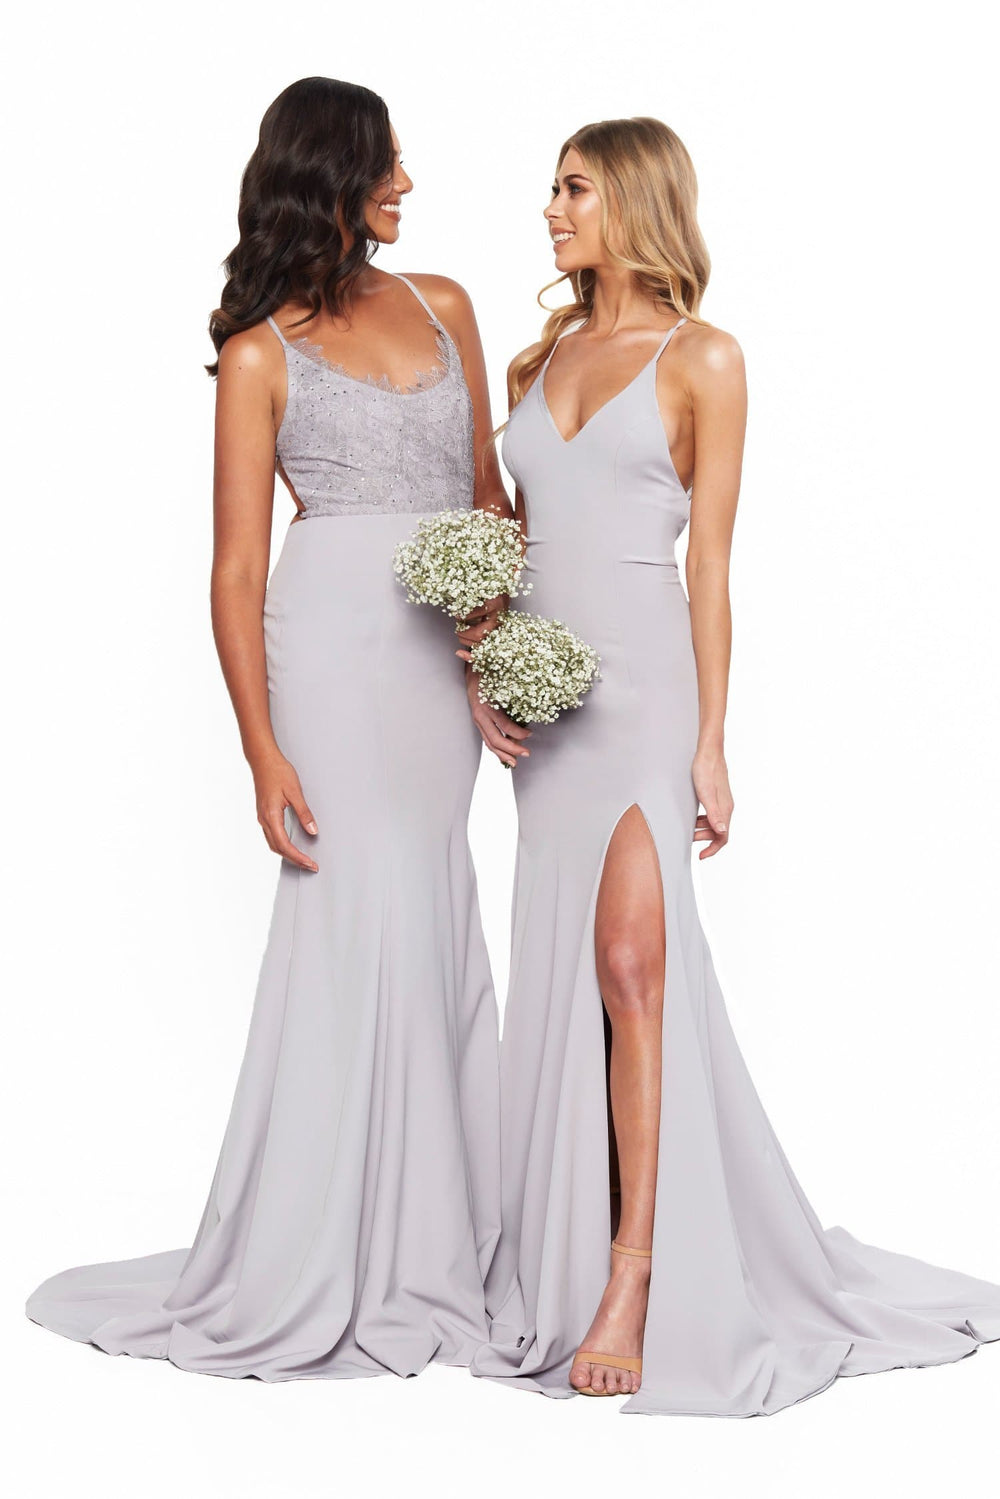 A&N Bridesmaids Emilie Lace-Up V-Neck Gown With Slit - Grey Lilac